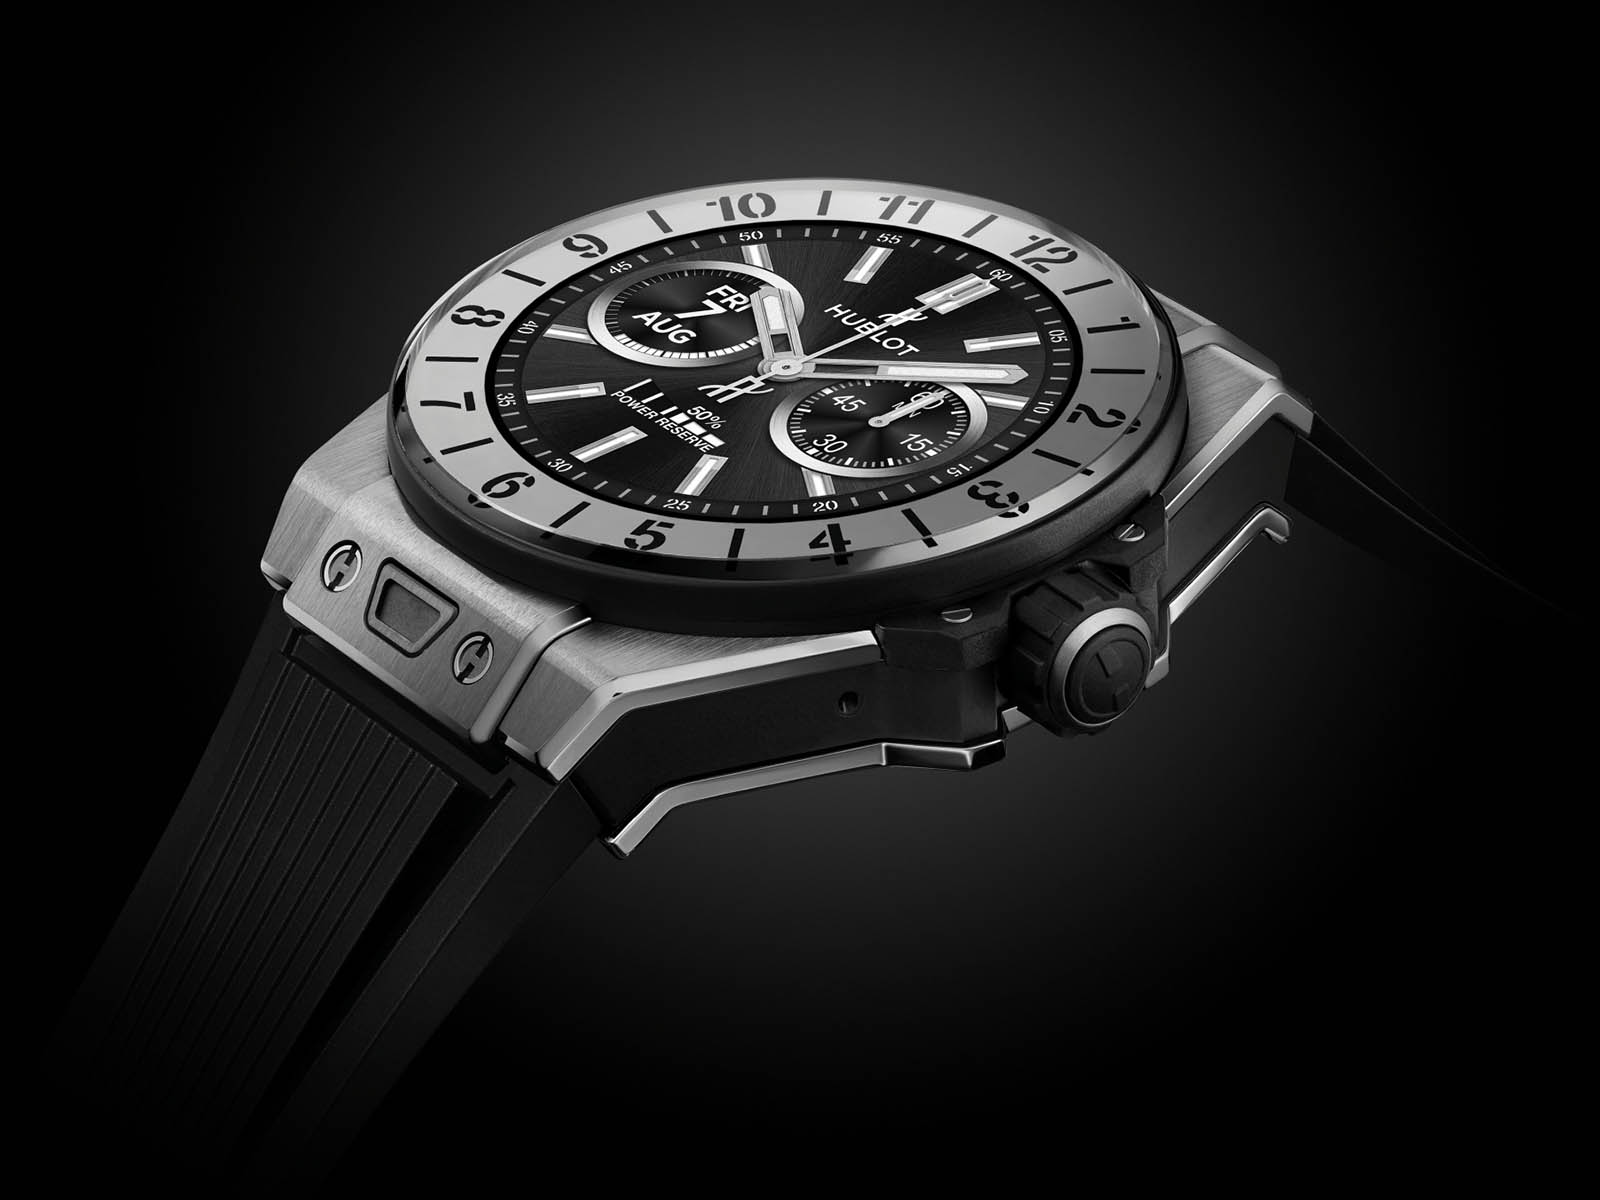 440-nx-1100-rx-hublot-big-bang-e-titanium-42-mm-3.jpg